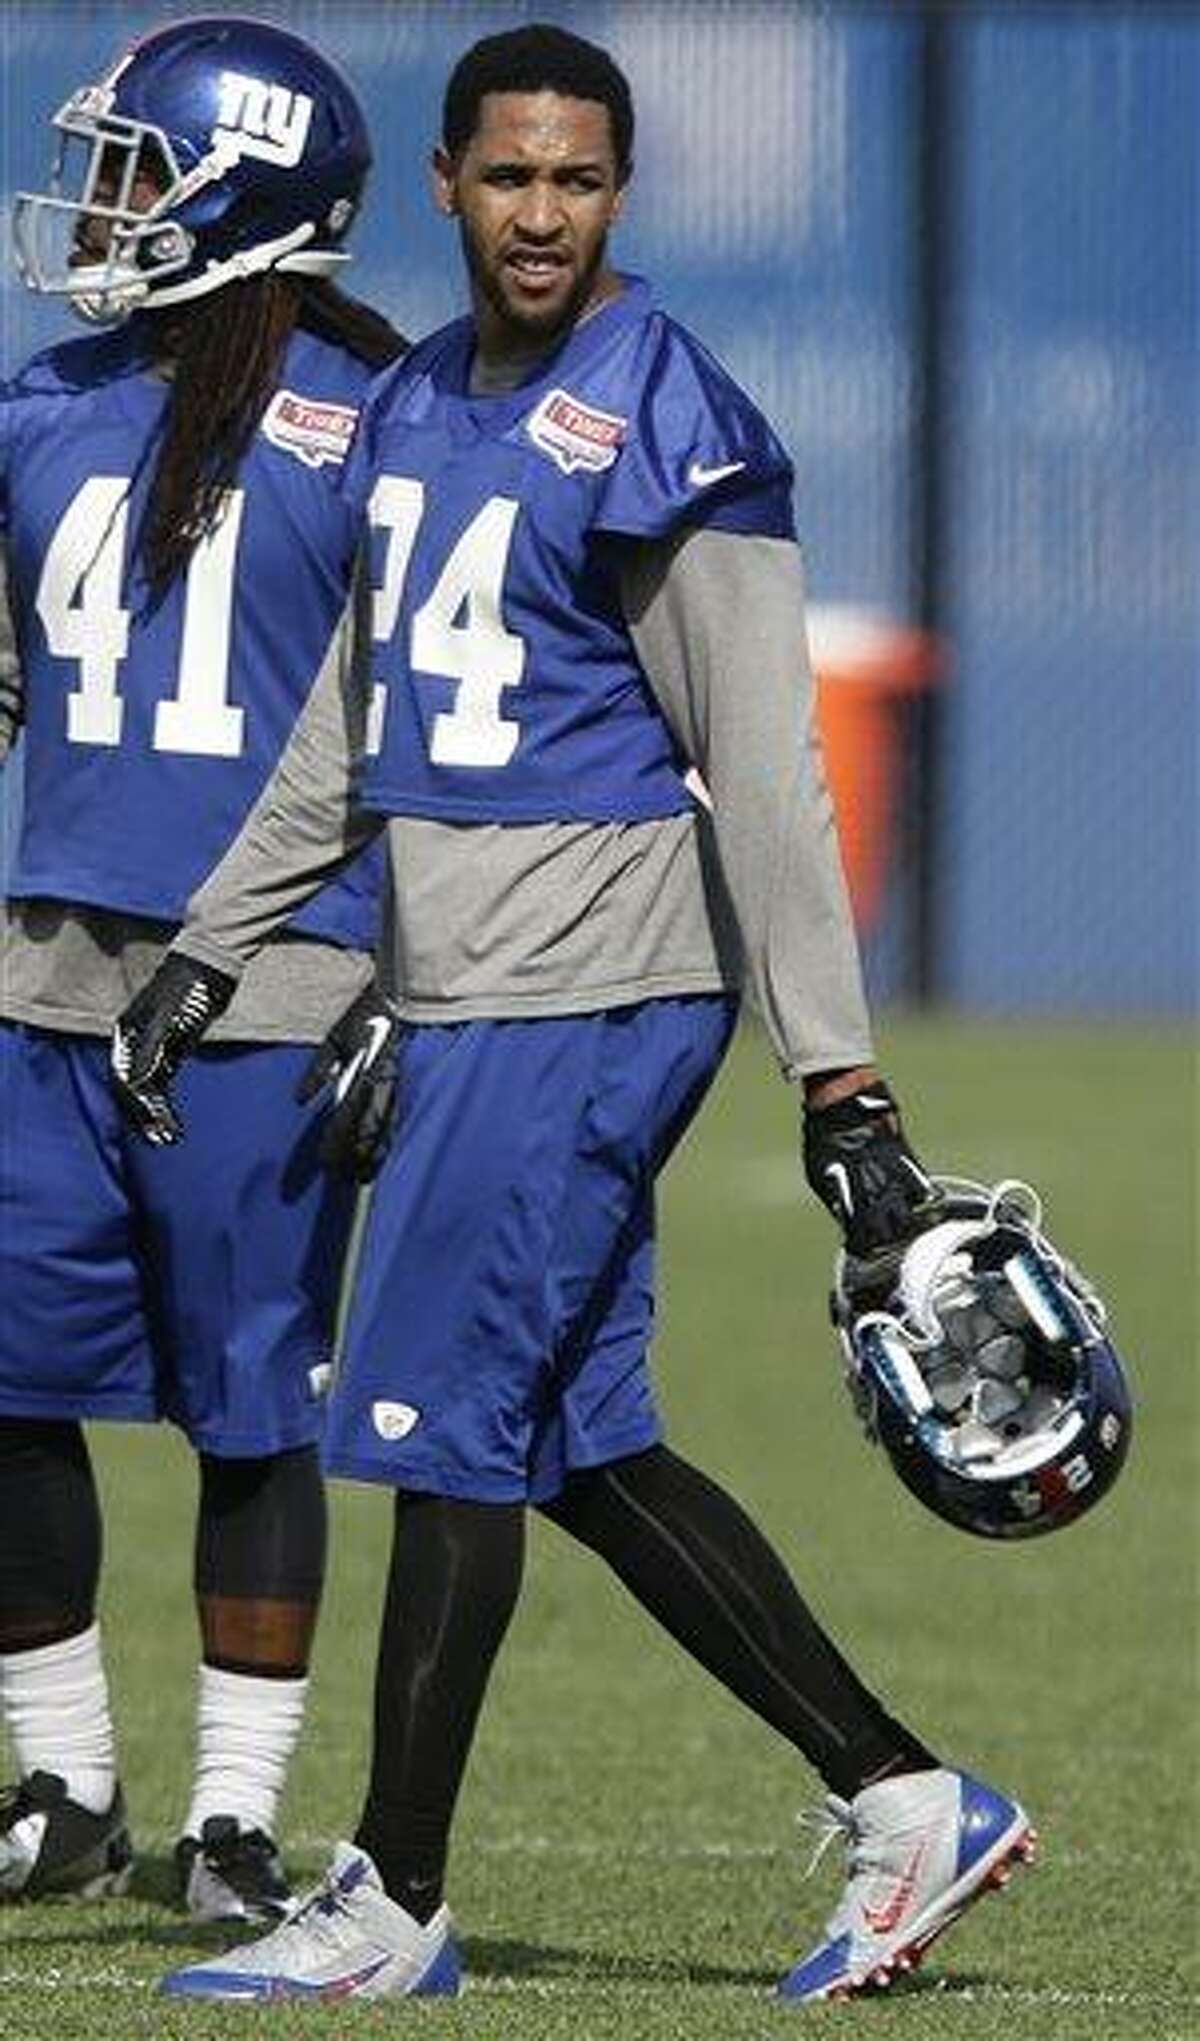 New York Giants' Terrell Thomas (24) walks on the field during mini camp Tuesday, June 11, 2013, in East Rutherford, N.J. (AP Photo/Frank Franklin II)